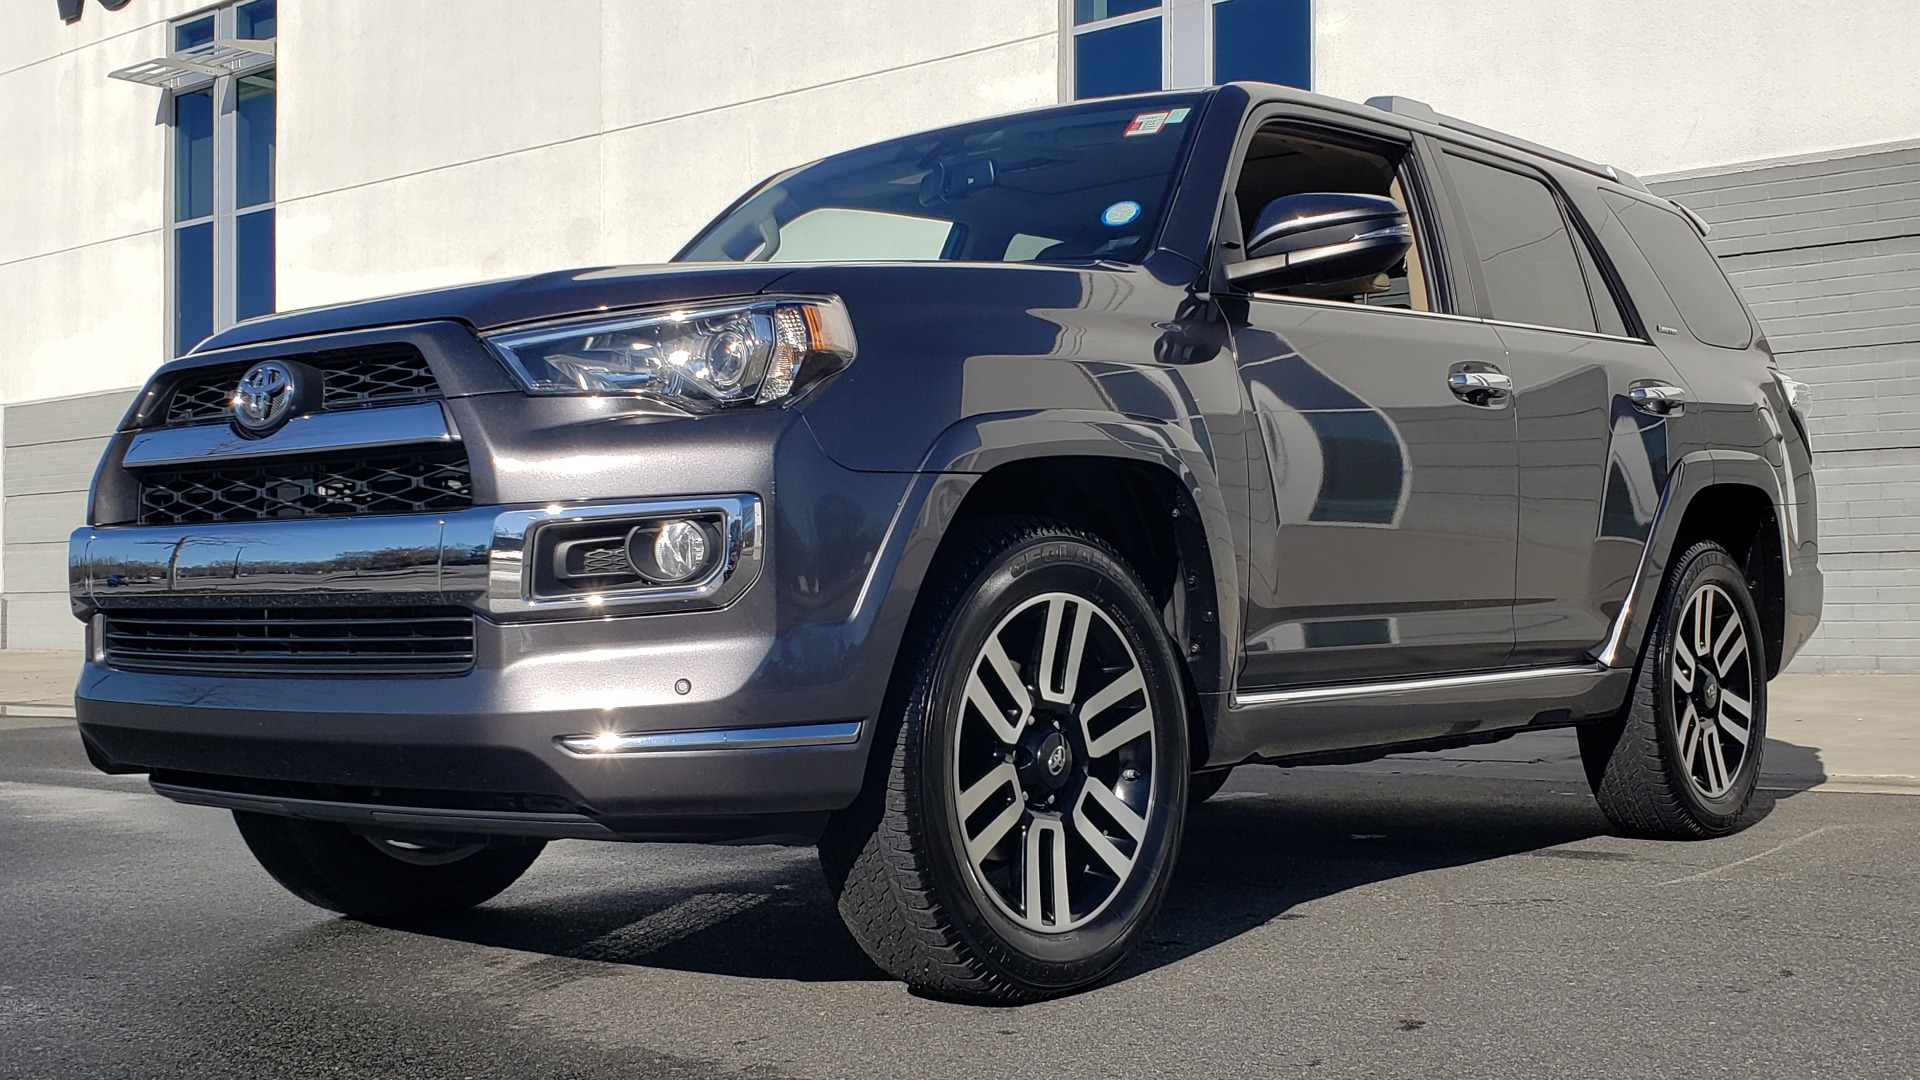 Used 2018 Toyota 4RUNNER LIMITED 4X4 / 4.0 V6 / AUTO / NAV / SUNROOF / REARVIEW for sale Sold at Formula Imports in Charlotte NC 28227 2